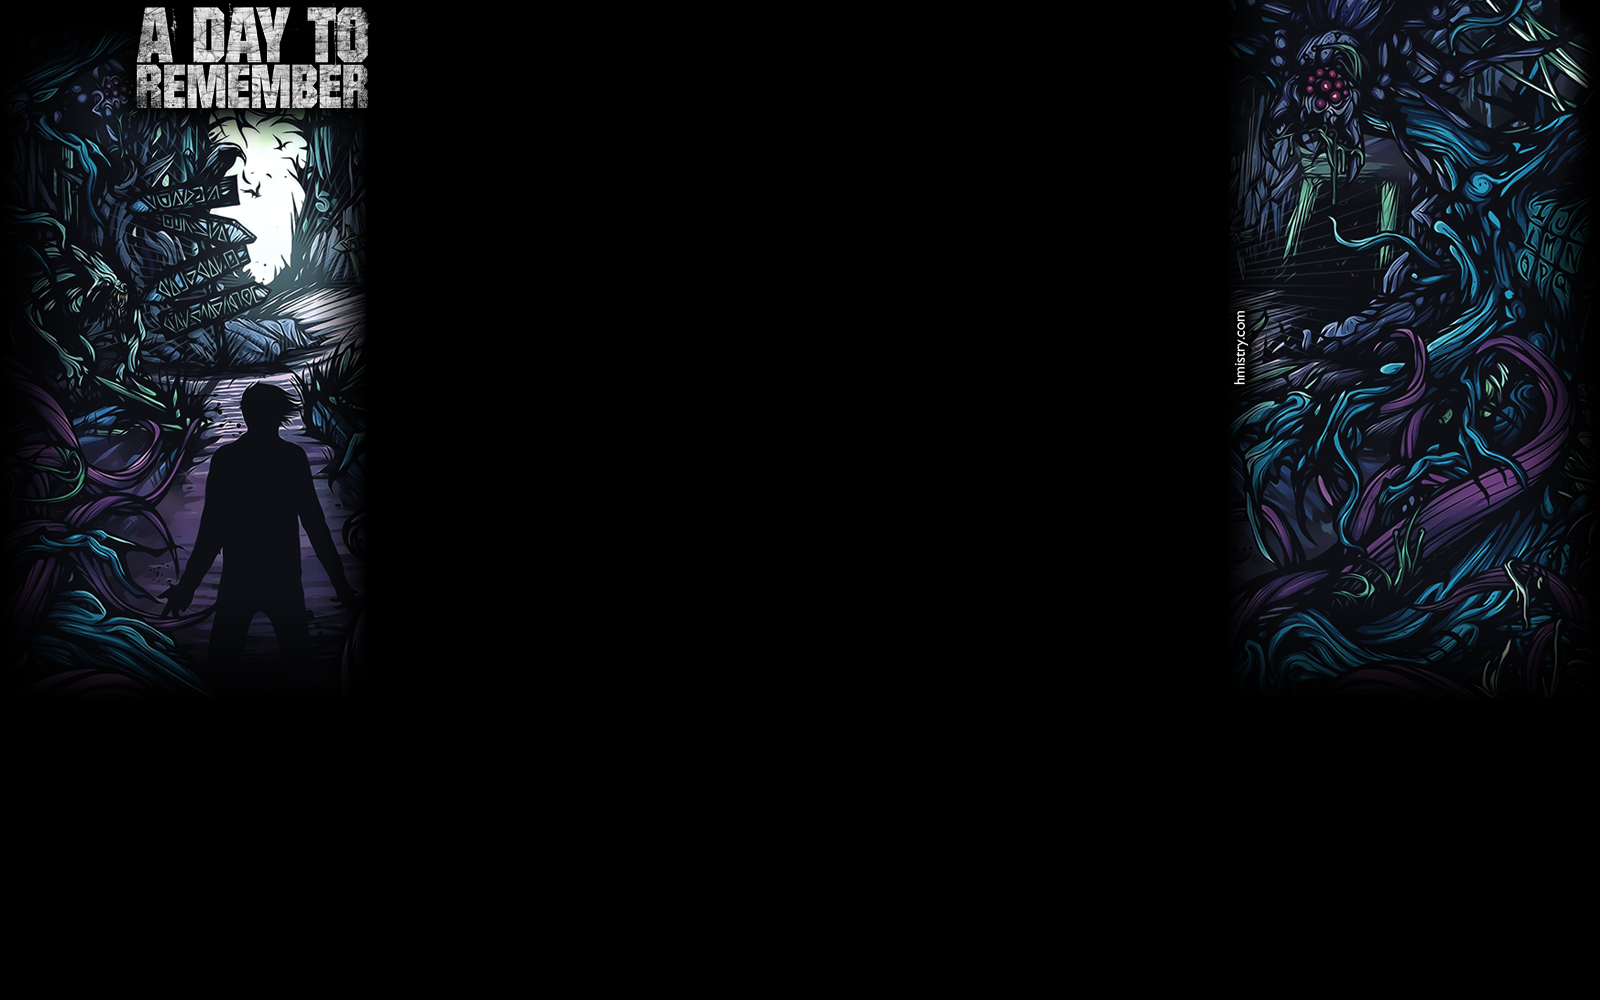 A Day To Remember Homesick Twitter background by 1600x1000